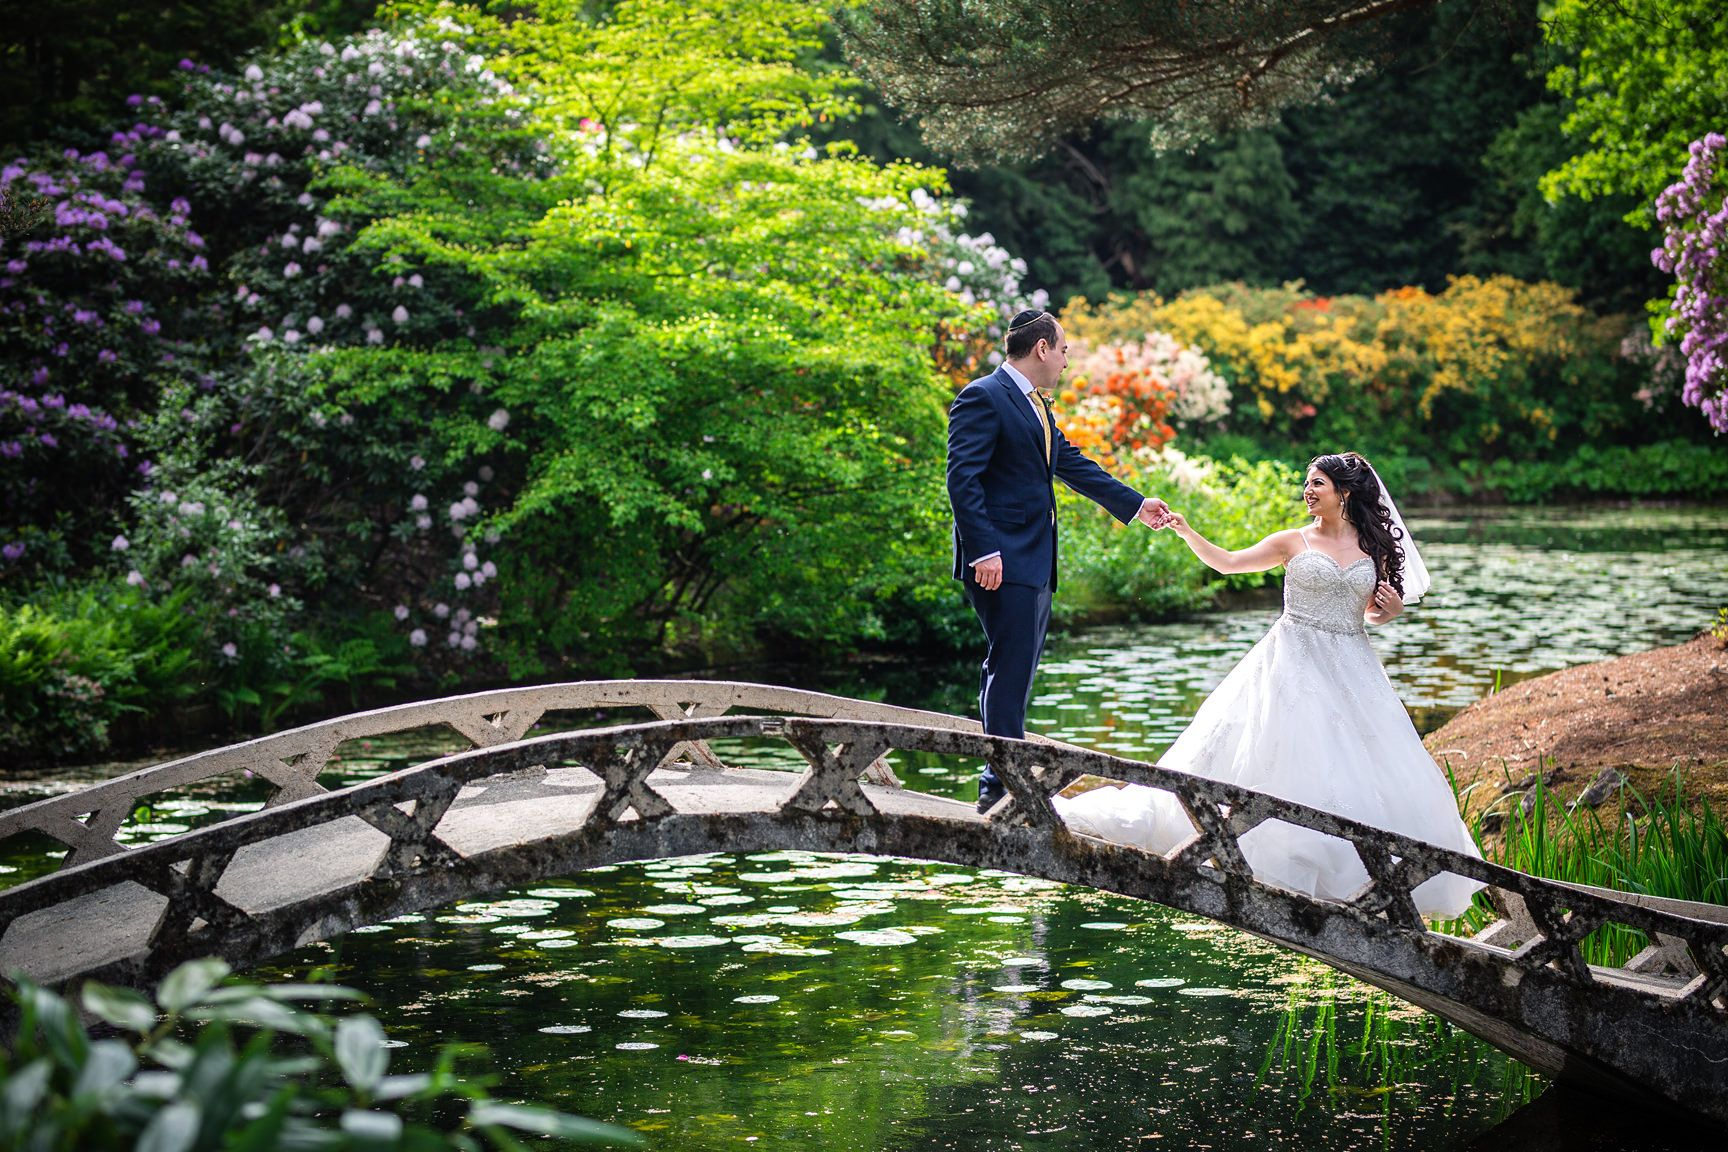 Manchester Jewish wedding photographer captures the bride and groom on a bridge at their Tatton Park wedding in Summer